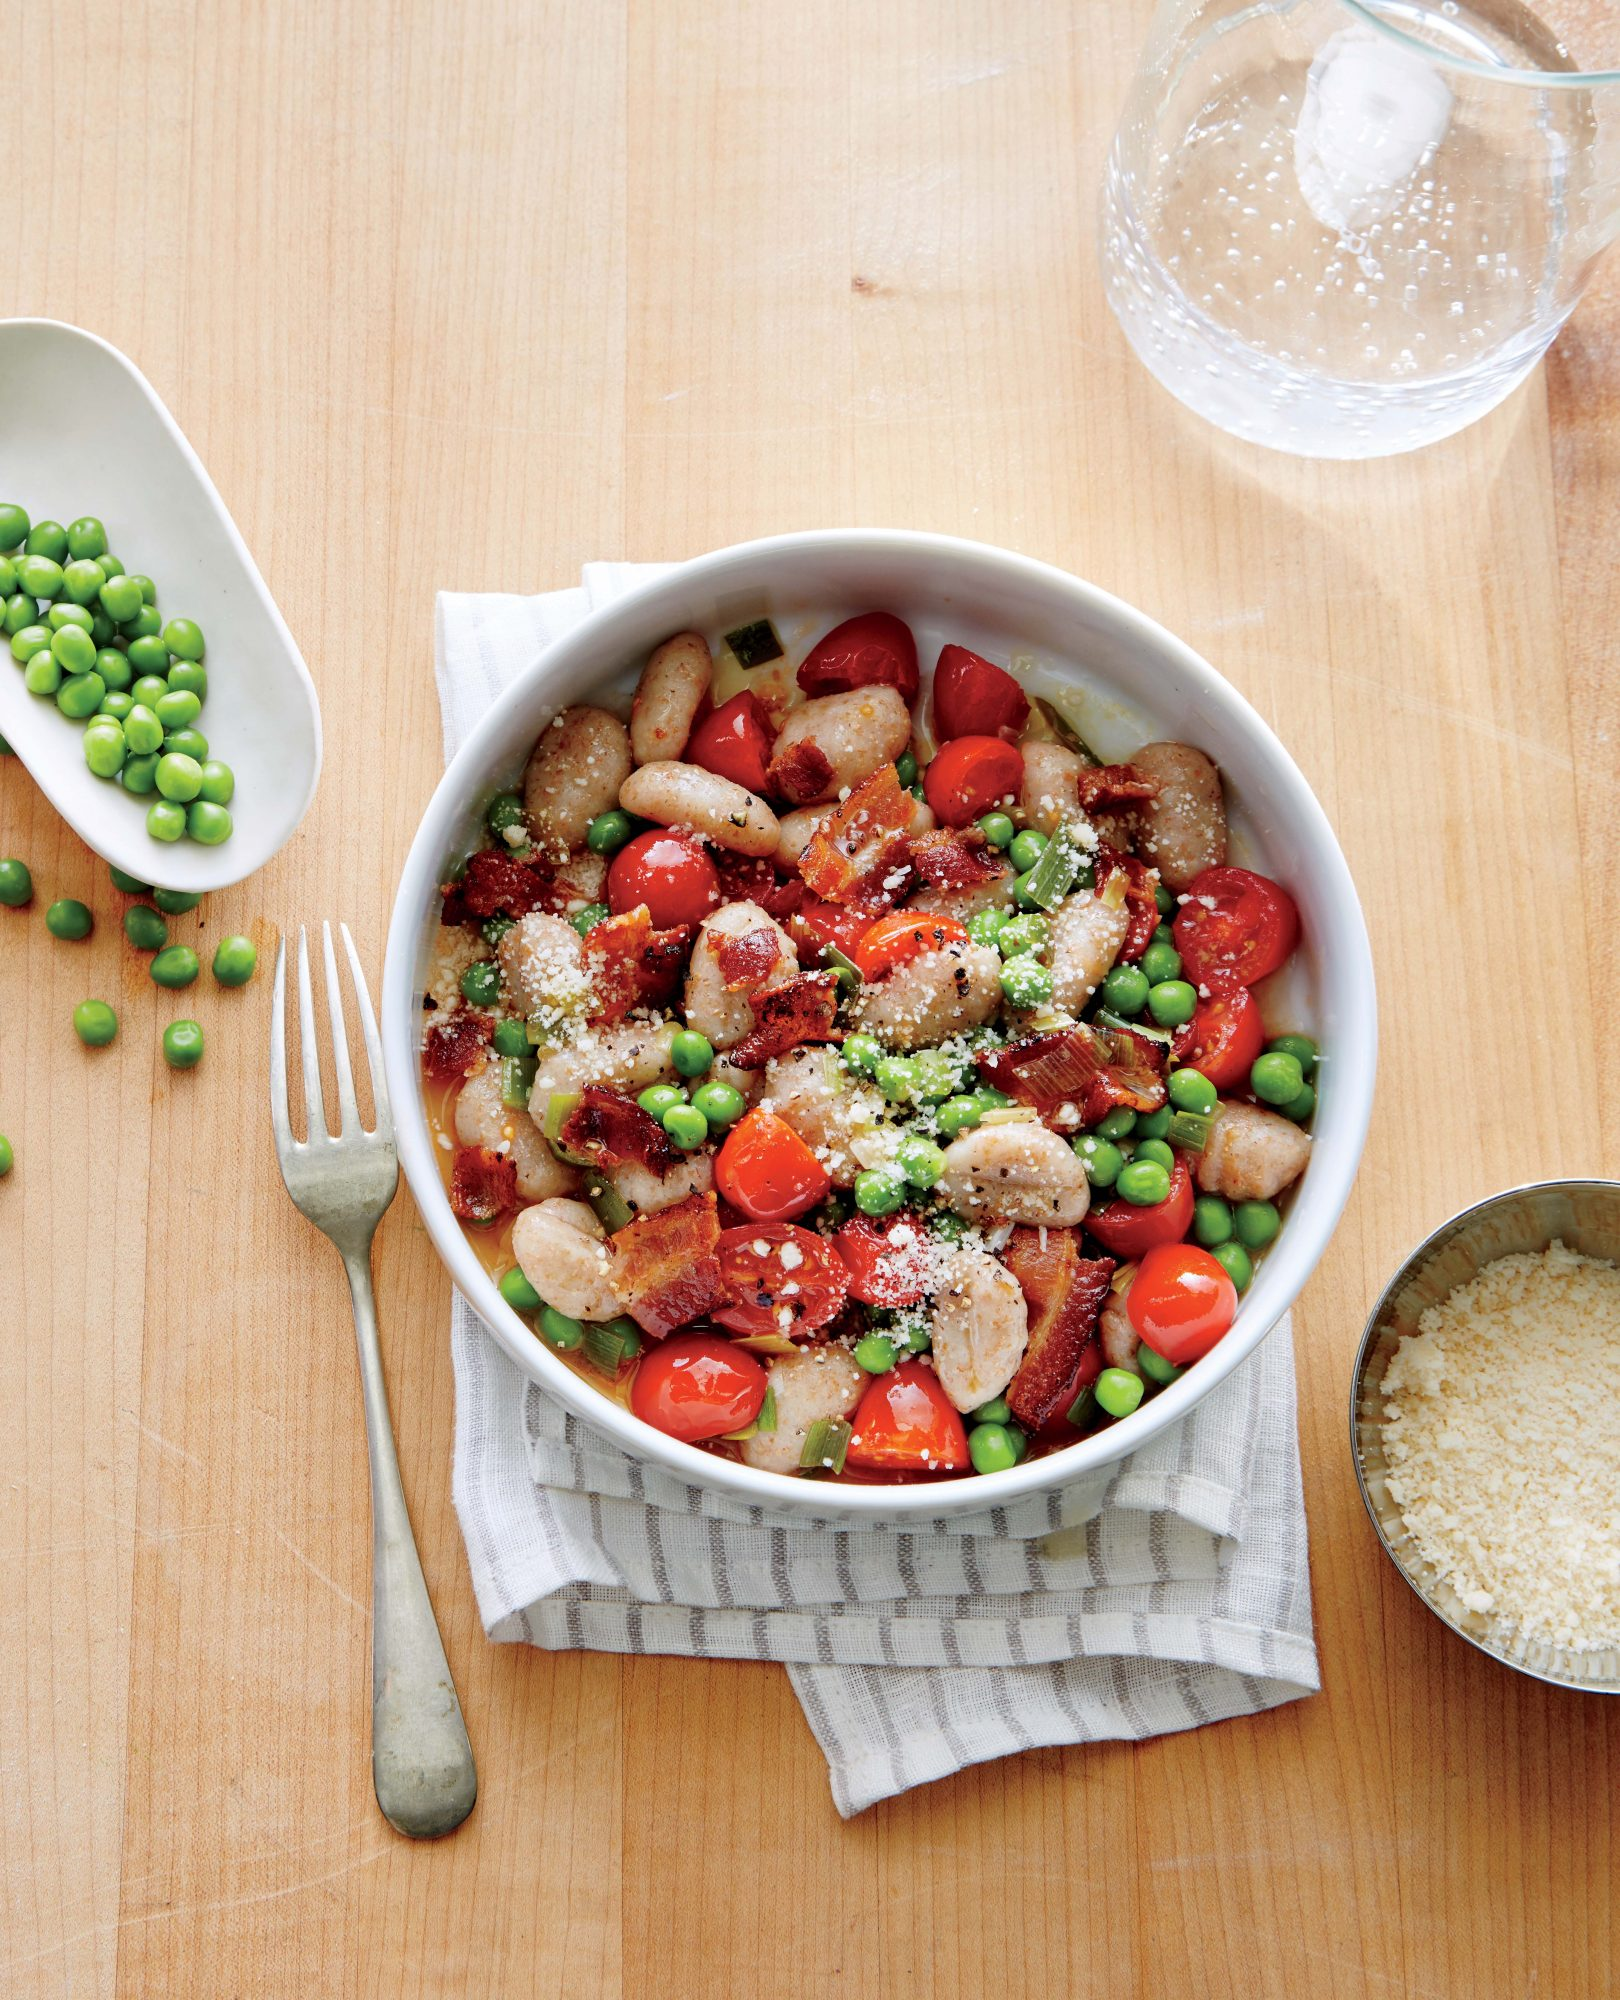 Pea, Tomato, and Bacon Gnocchi image